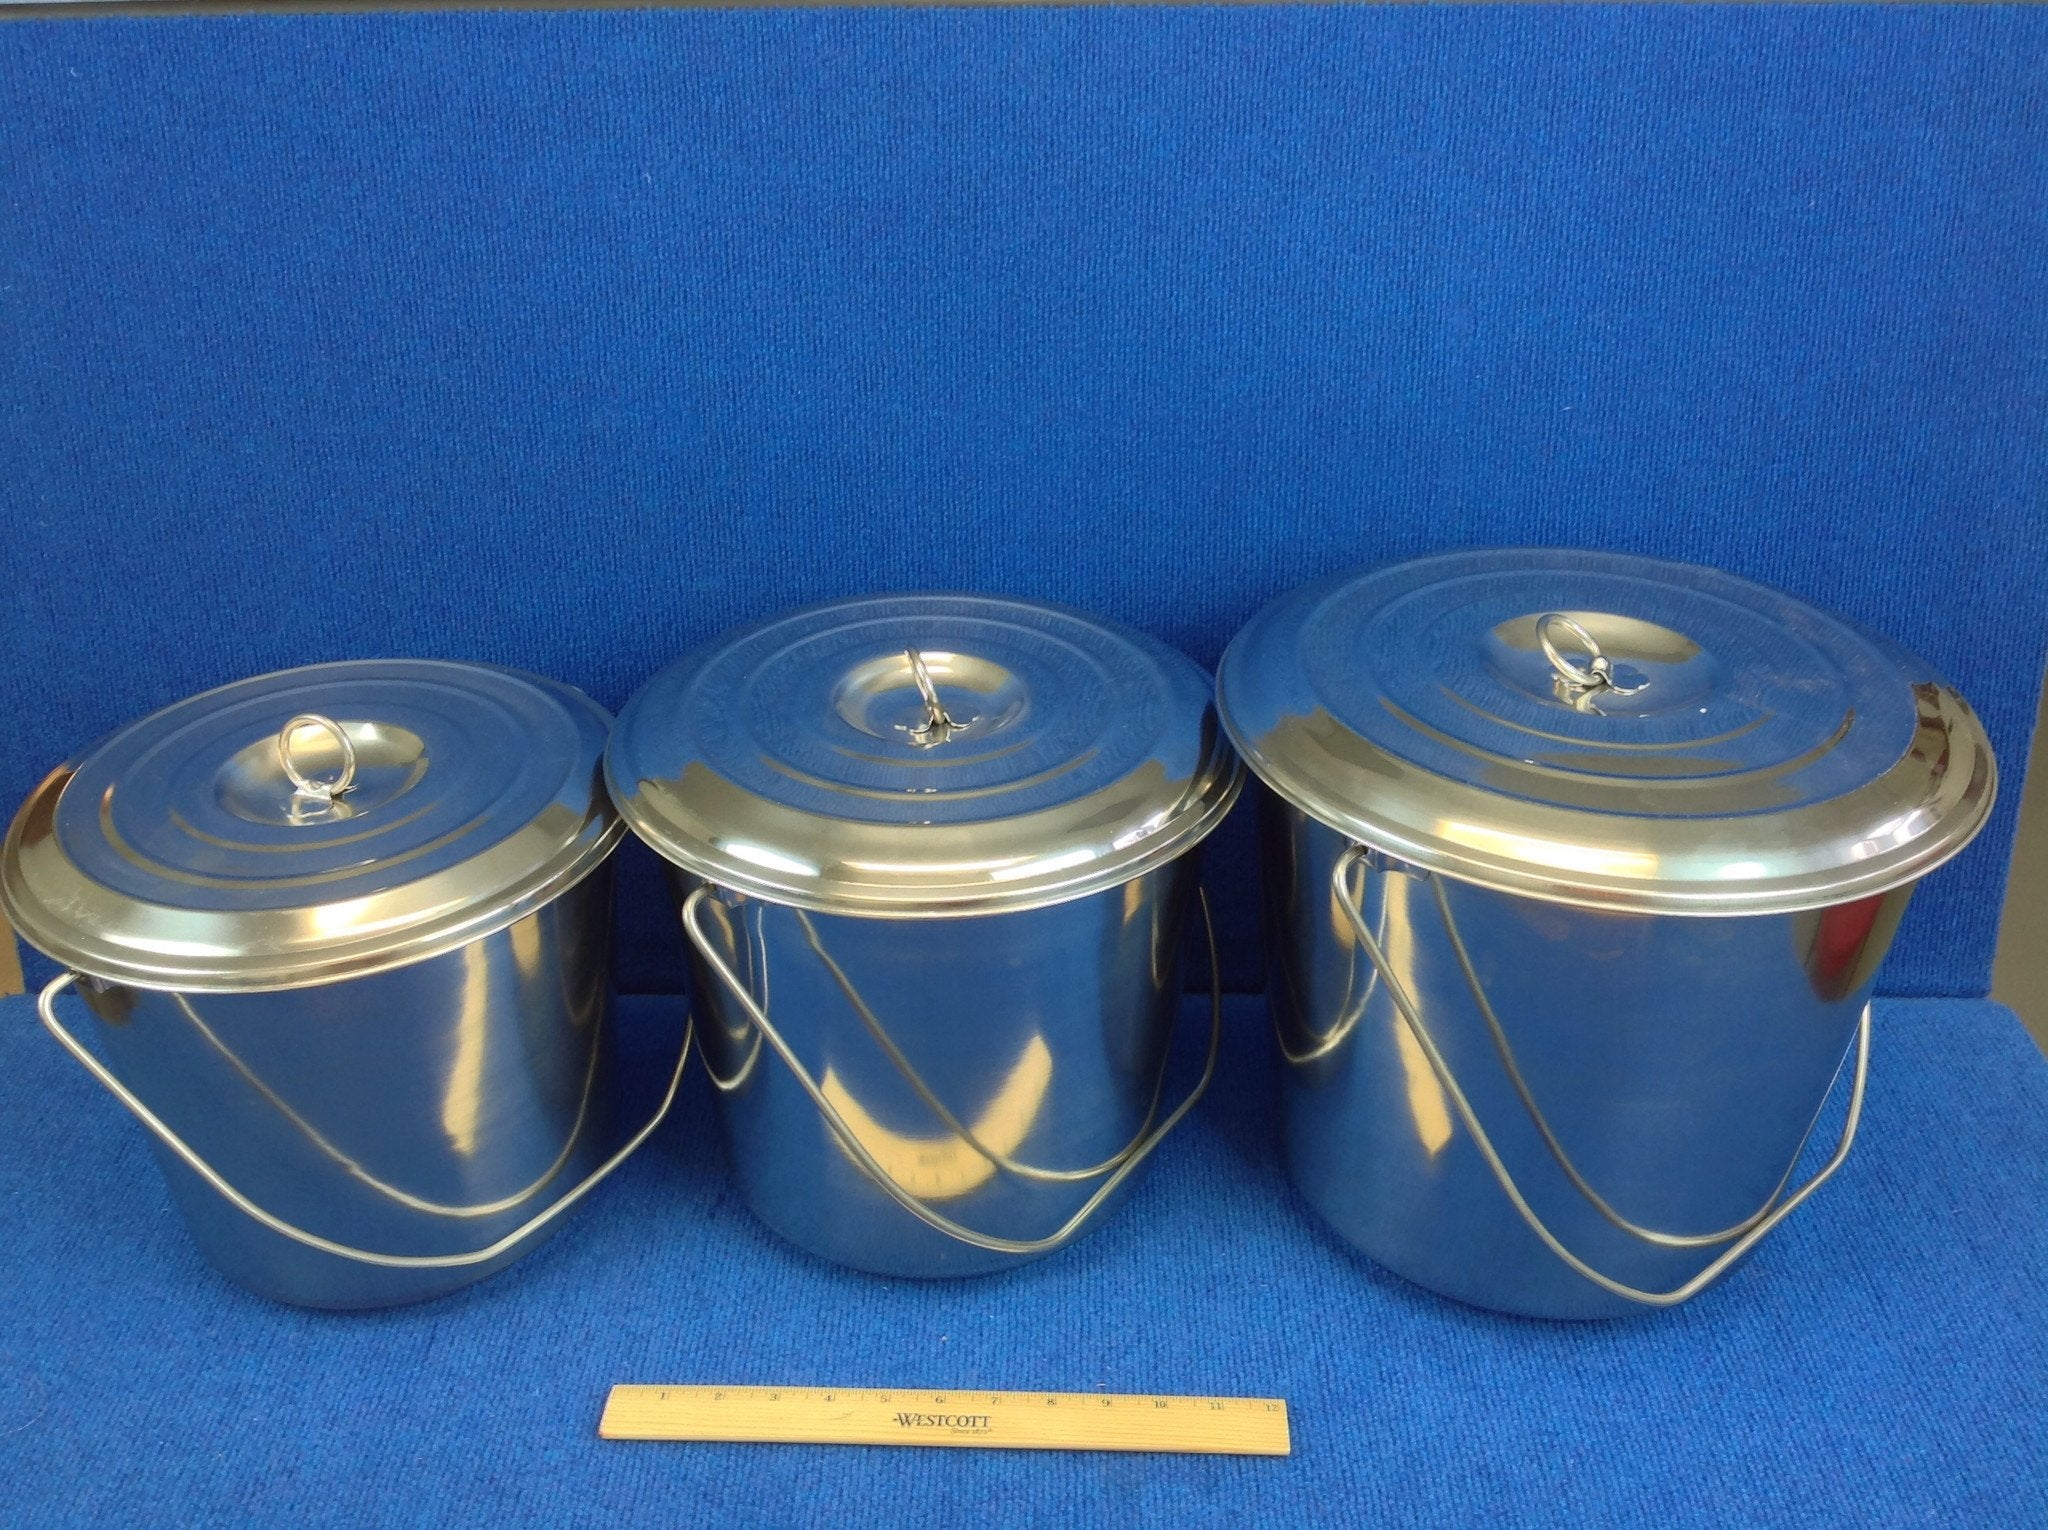 Lightweight Stainless Steel Milk Pail with Lid